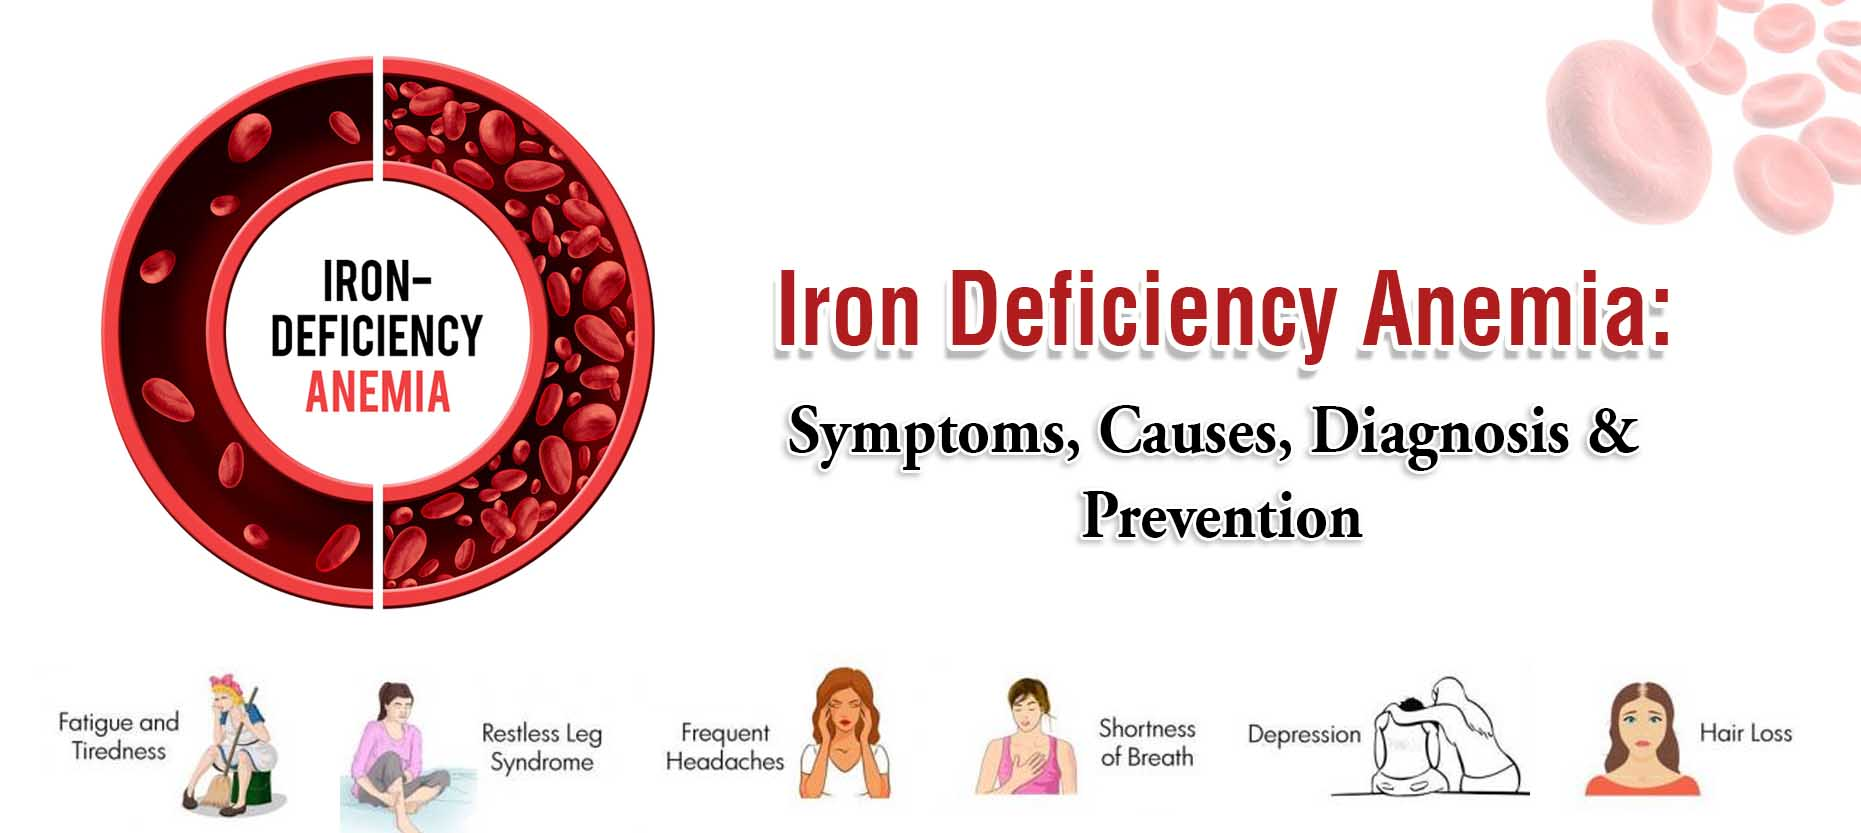 Iron Deficiency Anemia: Symptoms, Causes, Diagnosis & Prevention